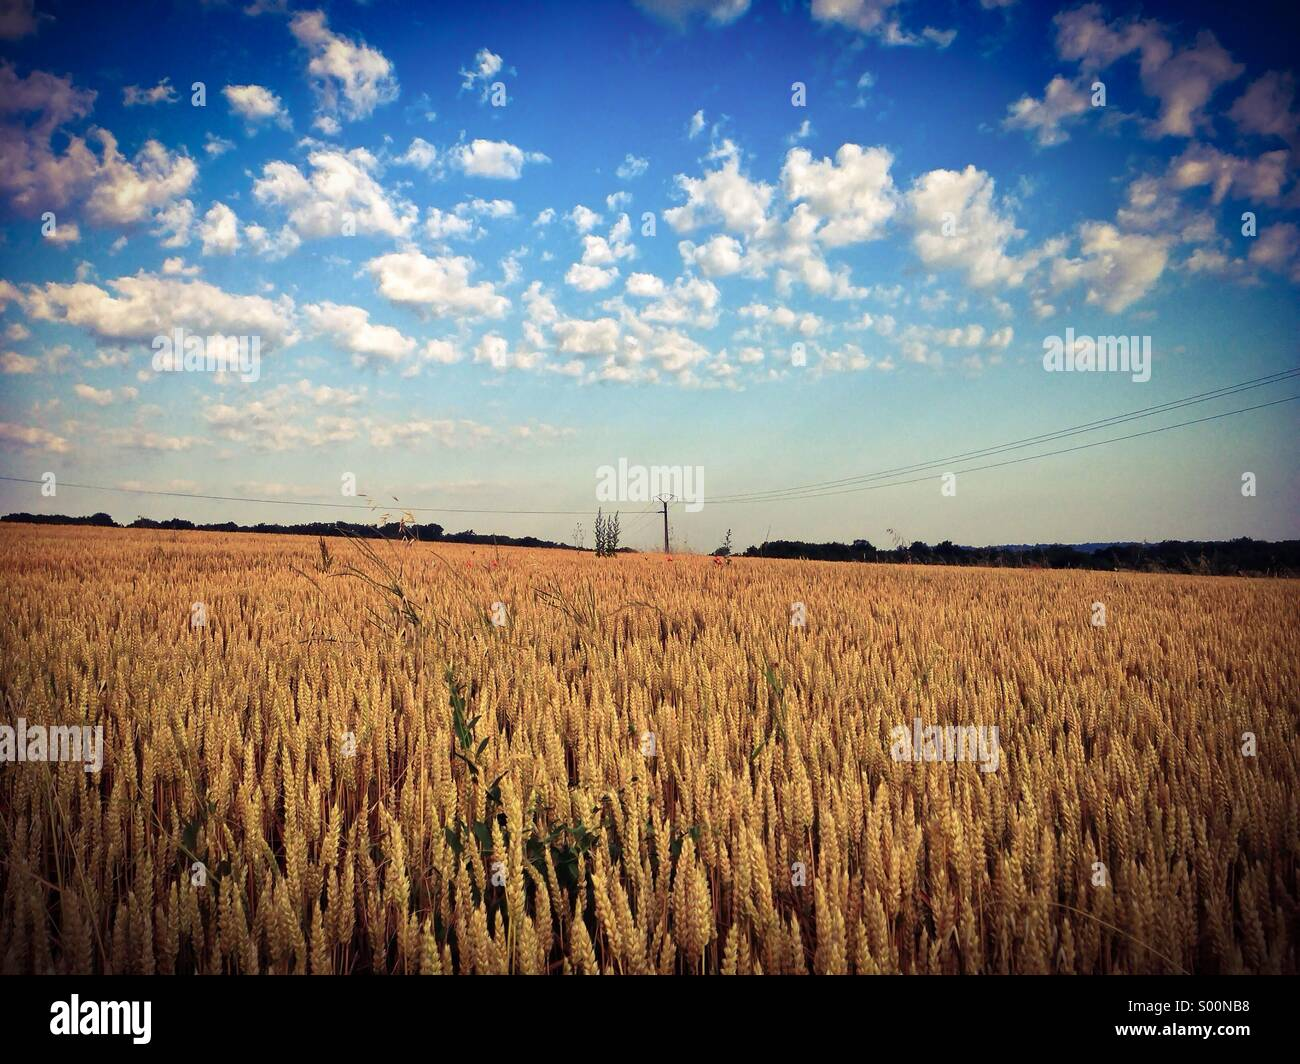 Field of Wheat in the Sunshine - Stock Image